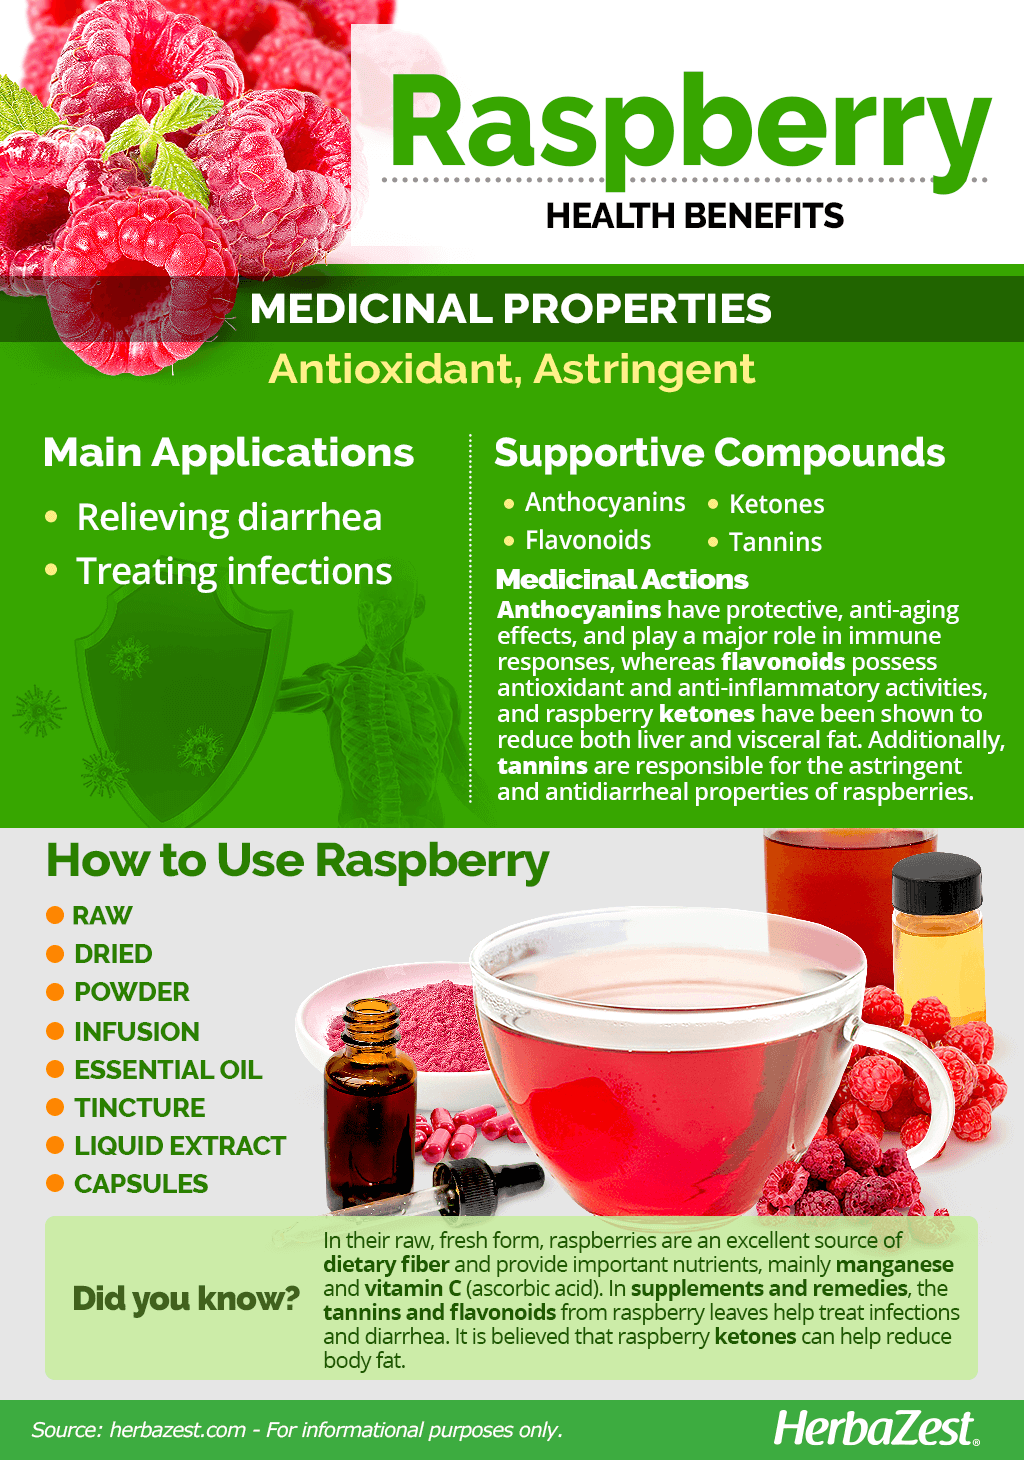 All About Raspberry